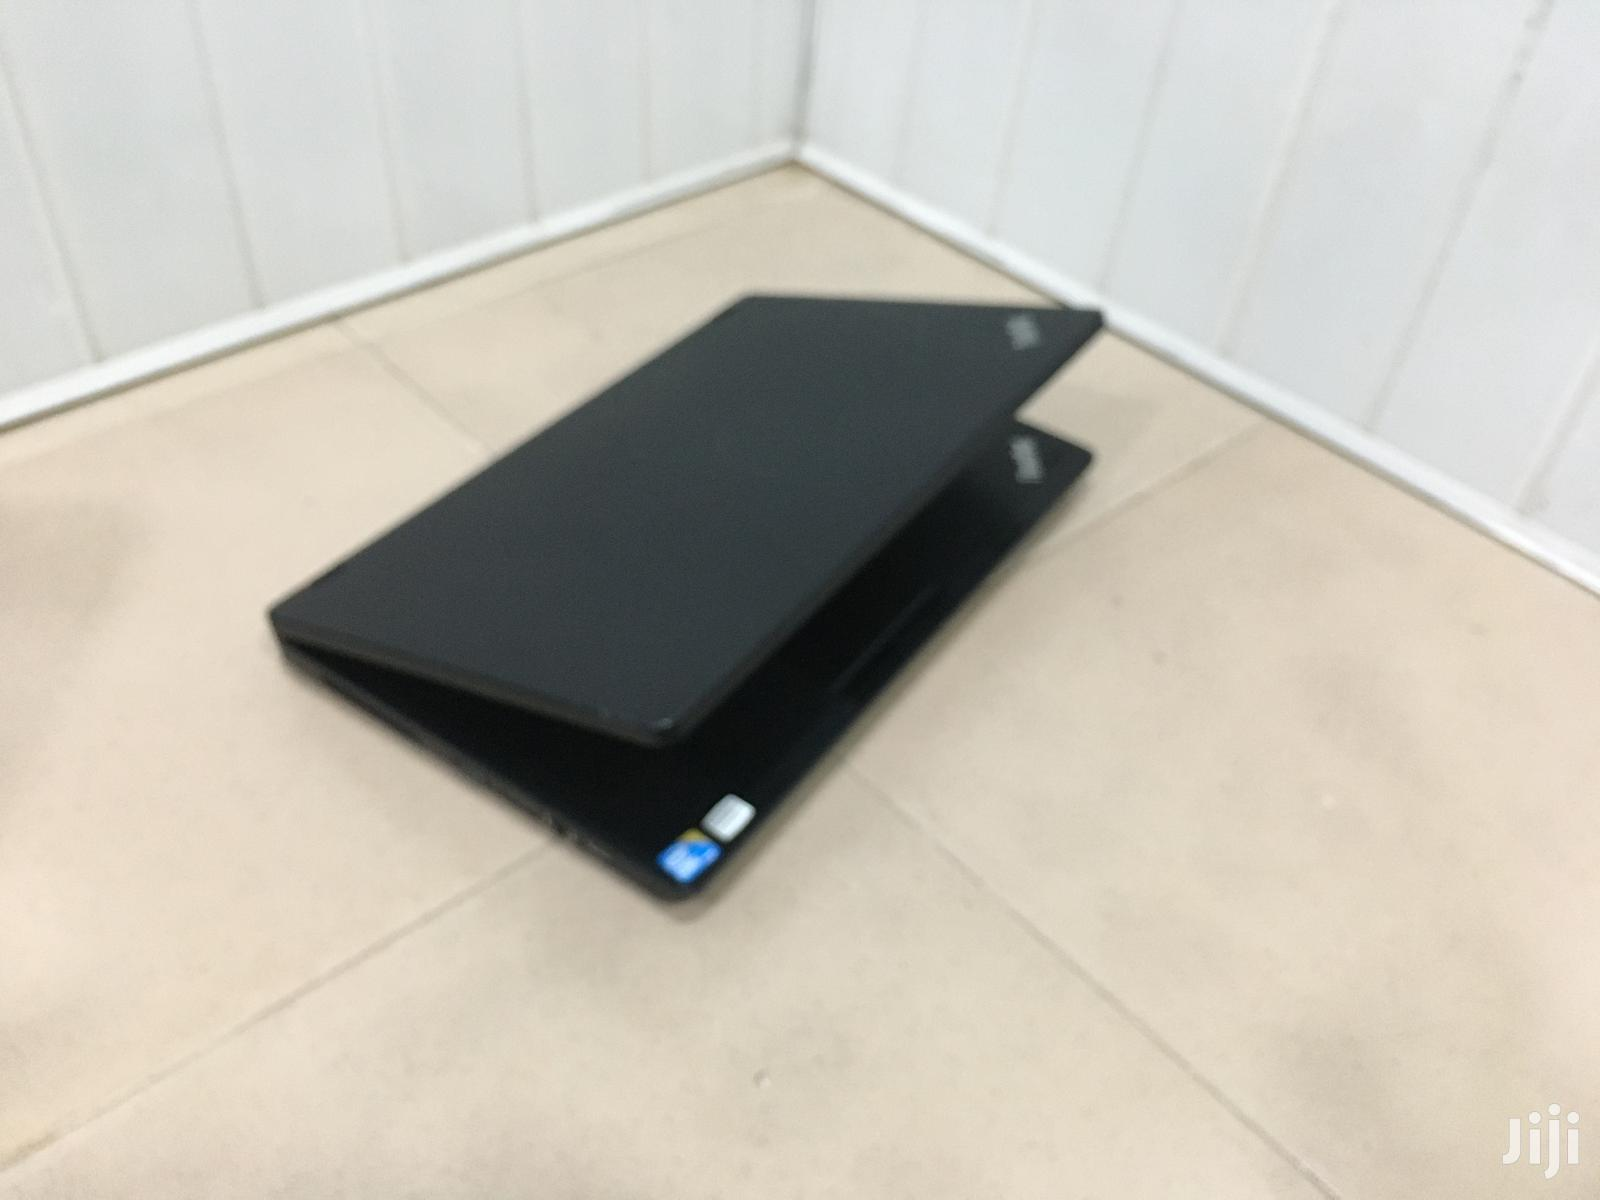 Laptop Lenovo ThinkPad Edge E550 4GB Intel Core I3 HDD 320GB | Laptops & Computers for sale in Achimota, Greater Accra, Ghana